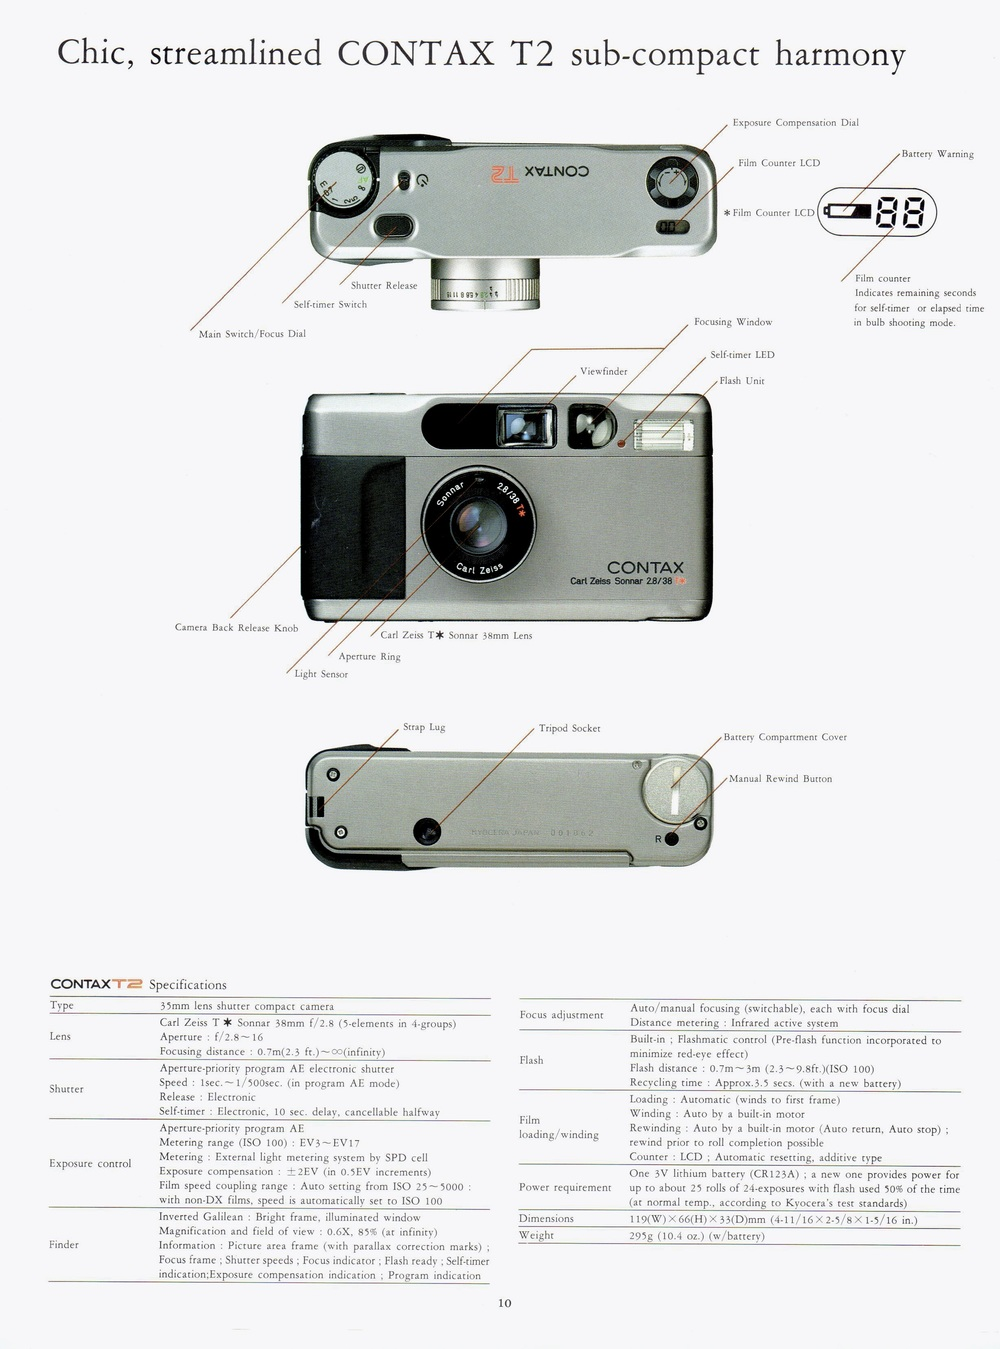 contax t2 theanalogstory rh theanalogstory com contax t2 databack manual contax t2 manual download